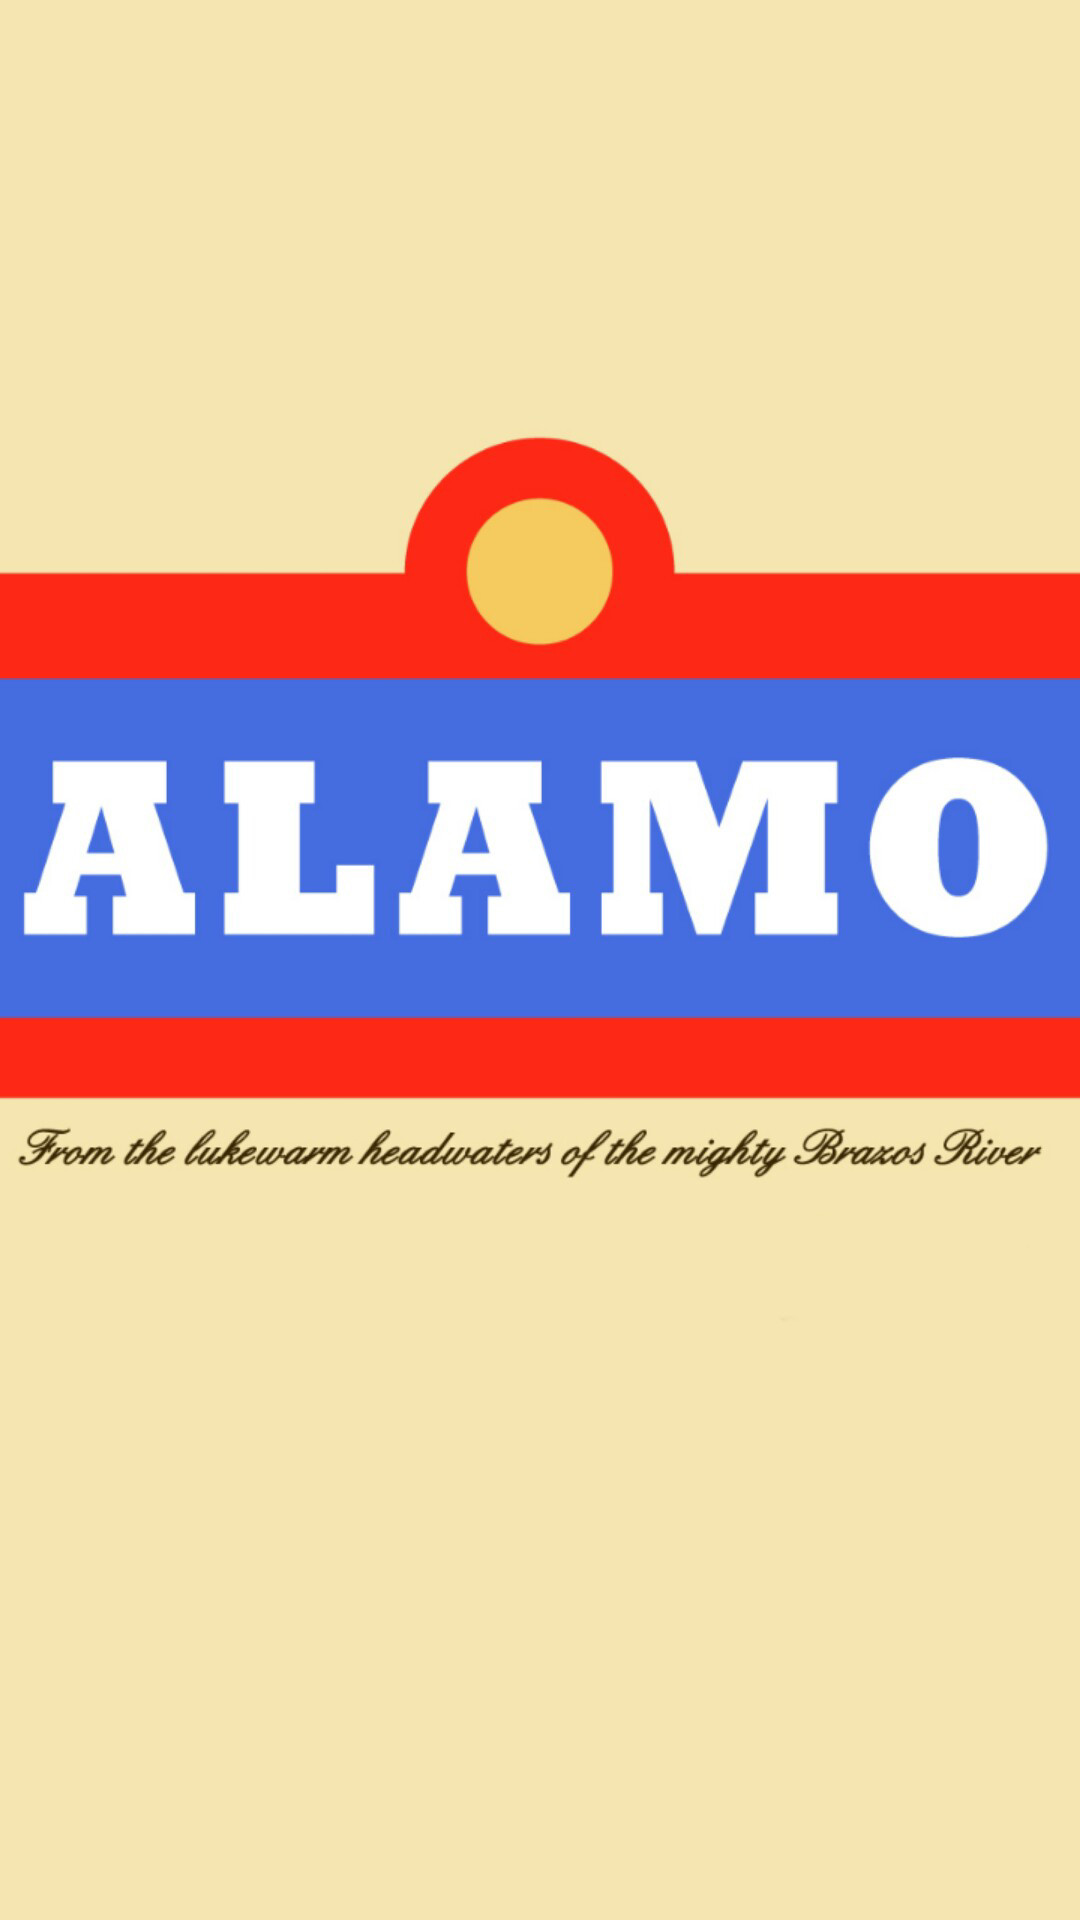 1080x1920 I made an Alamo beer phone wallpaper from an image I found.